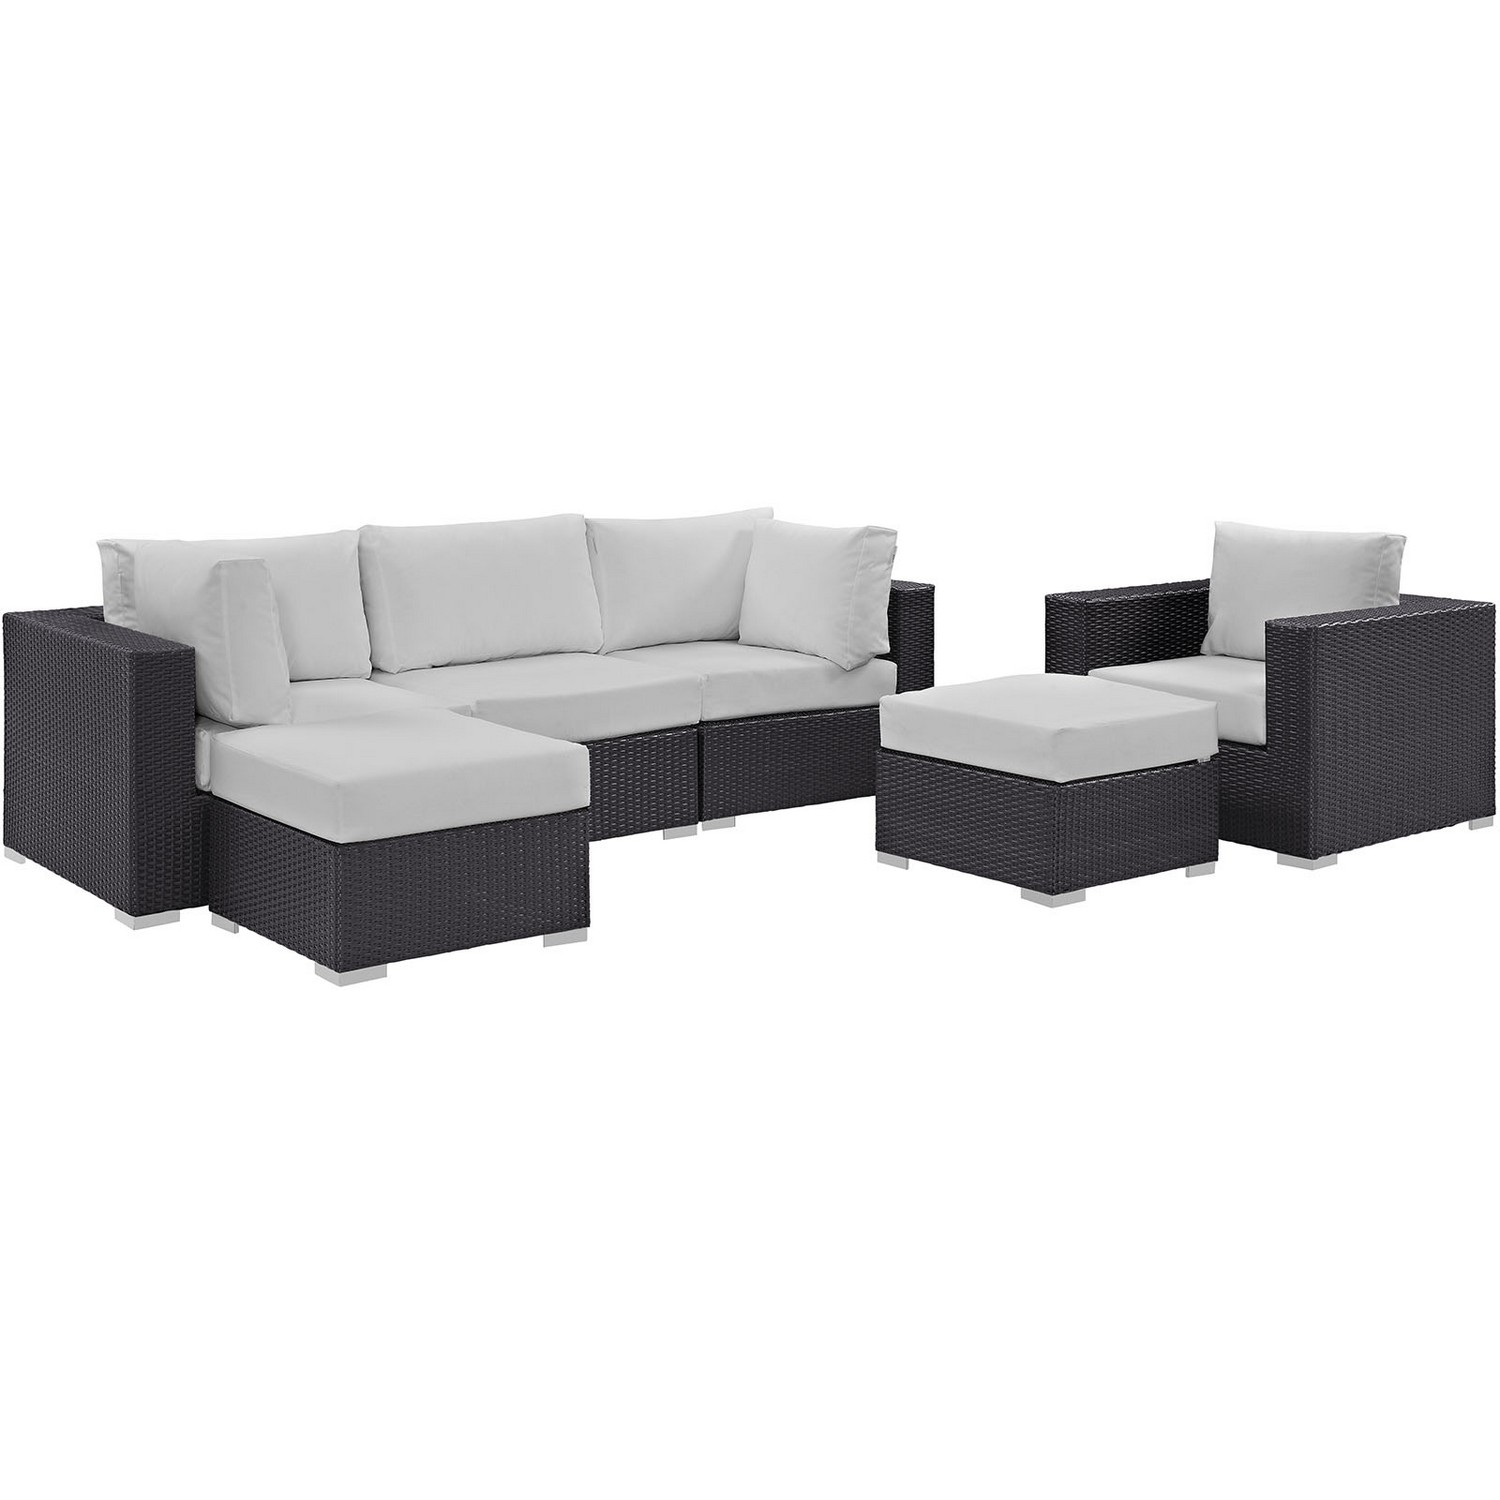 Modway Convene 6 Piece Outdoor Patio Sectional Set - Espresso White